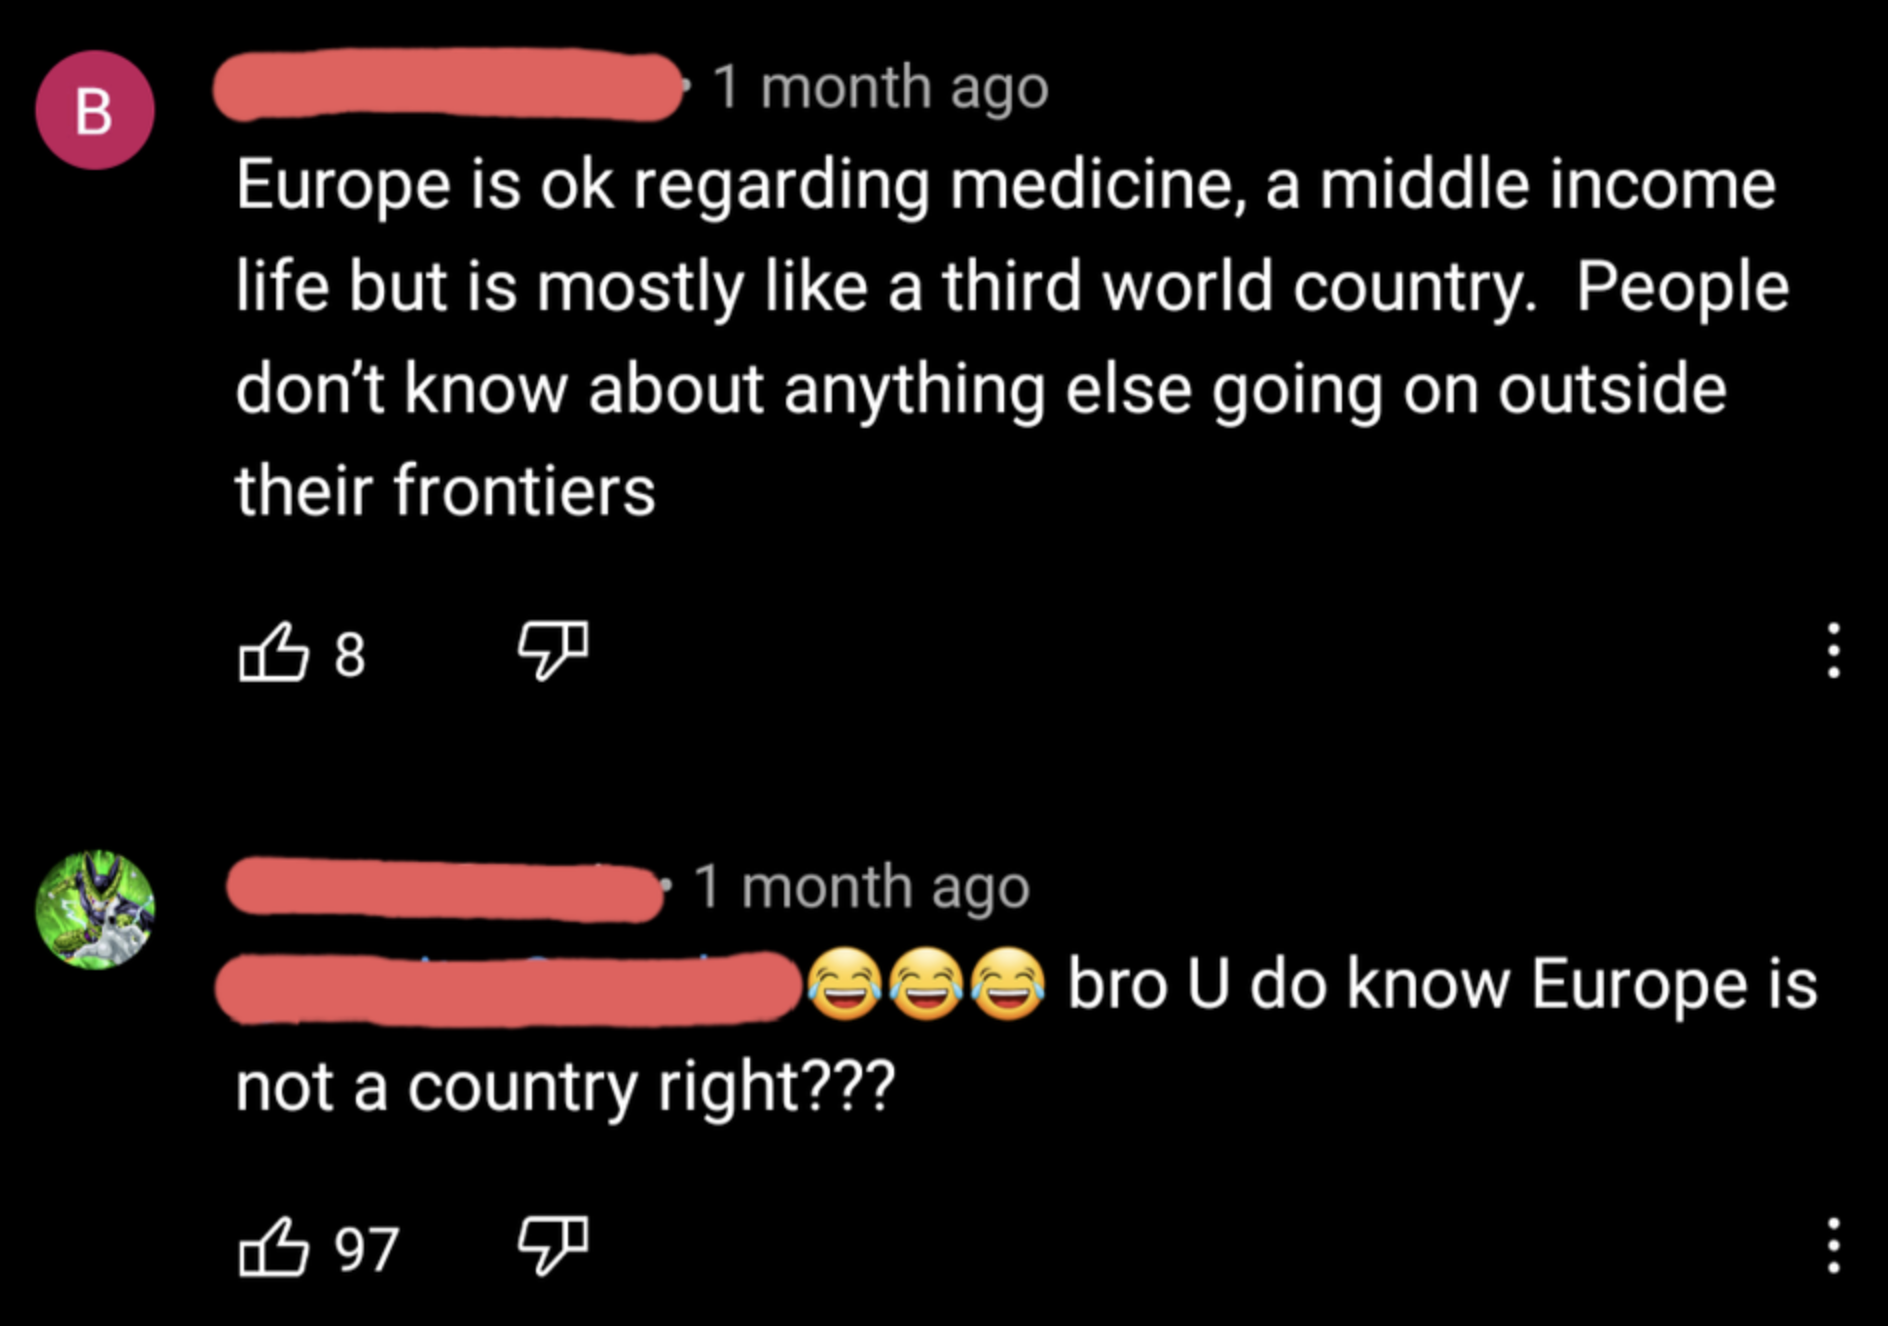 person who thinks europe is a country